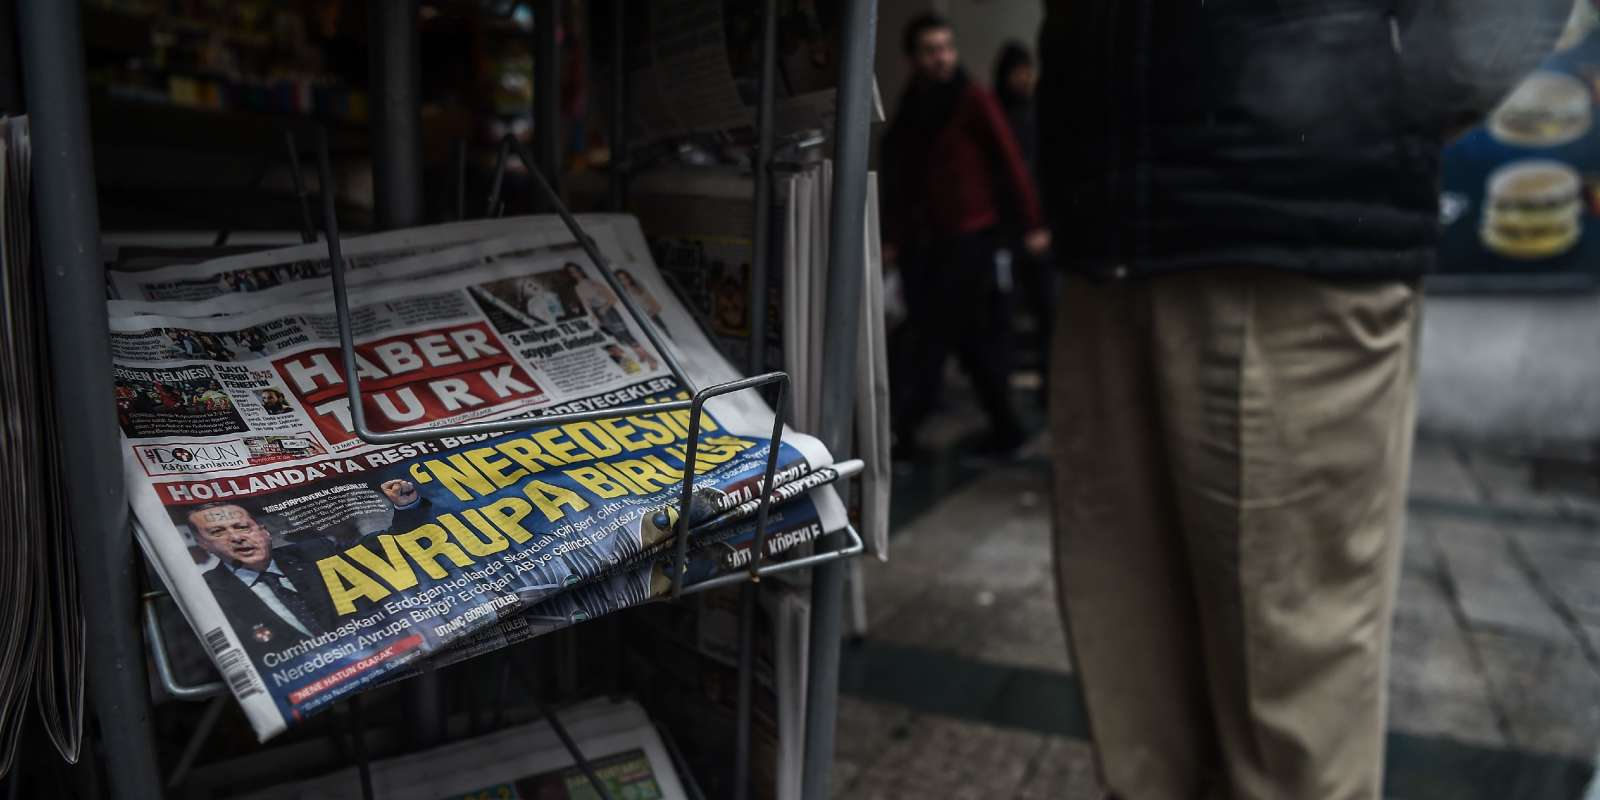 A man looks at a newspaper stand showing their front pages bearing headlines concerning diplomatic tensions between Turkey and The Netherlands, on display in Istanbul on March 13, 2017. Turkish President Recep Tayyip Erdogan warned the Netherlands would pay for blocking his ministers from holding rallies to win support in a referendum on expanding his powers, as a crisis escalated with Turkey's key EU partners.Erdogan also repeated hugely controversial accusations that the Netherlands -- occupied by Nazi Germany in World War II -- was behaving like fascists in its treatment of Turkish ministers. / AFP / OZAN KOSE